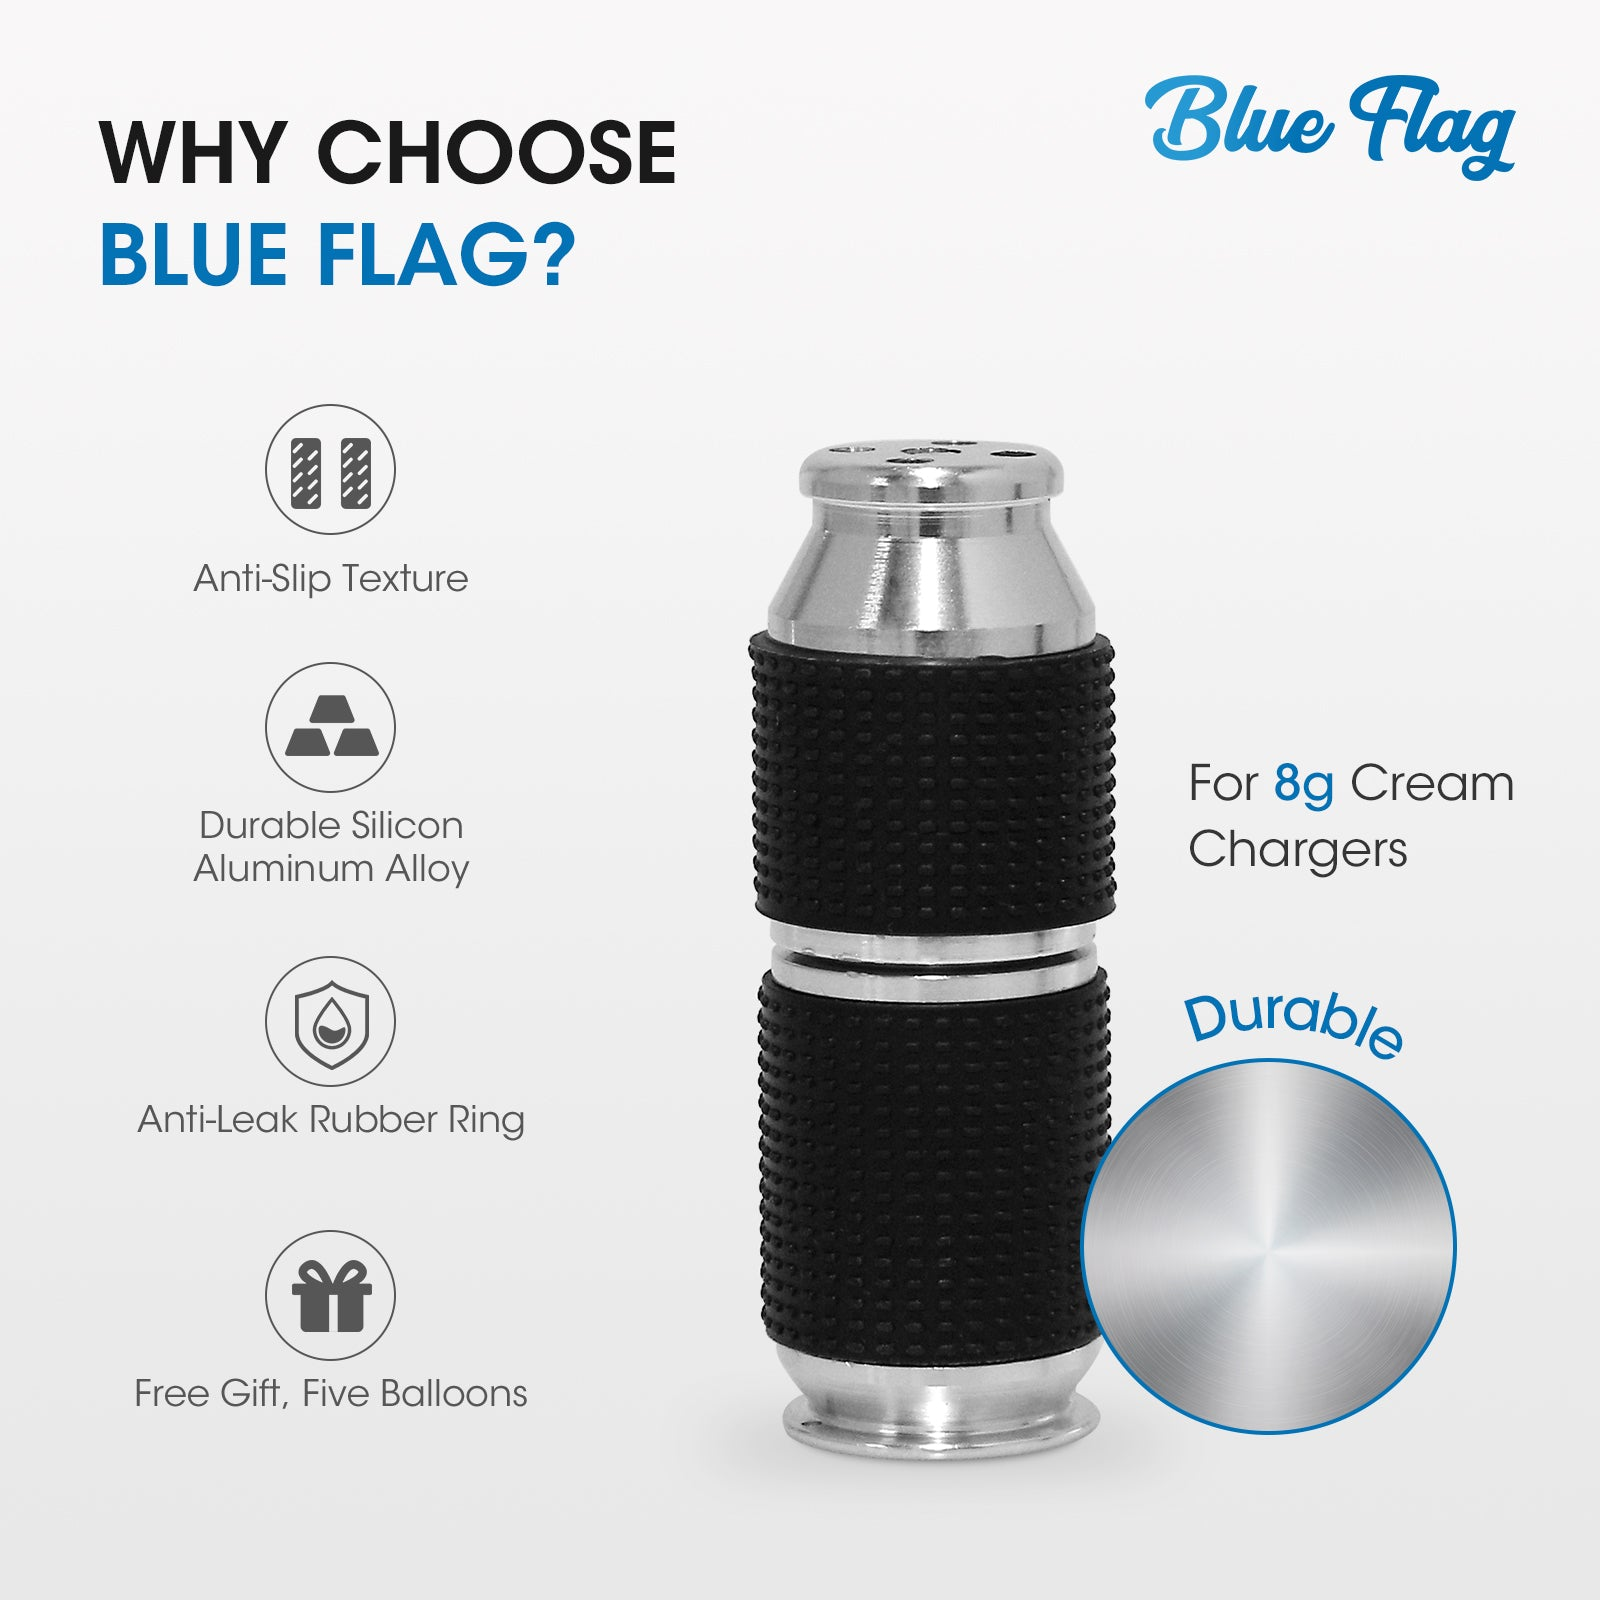 Portable Blue Flag Silver Whipped Cream Dispenser Safe Gas Canister Dispenser (1-Pack)